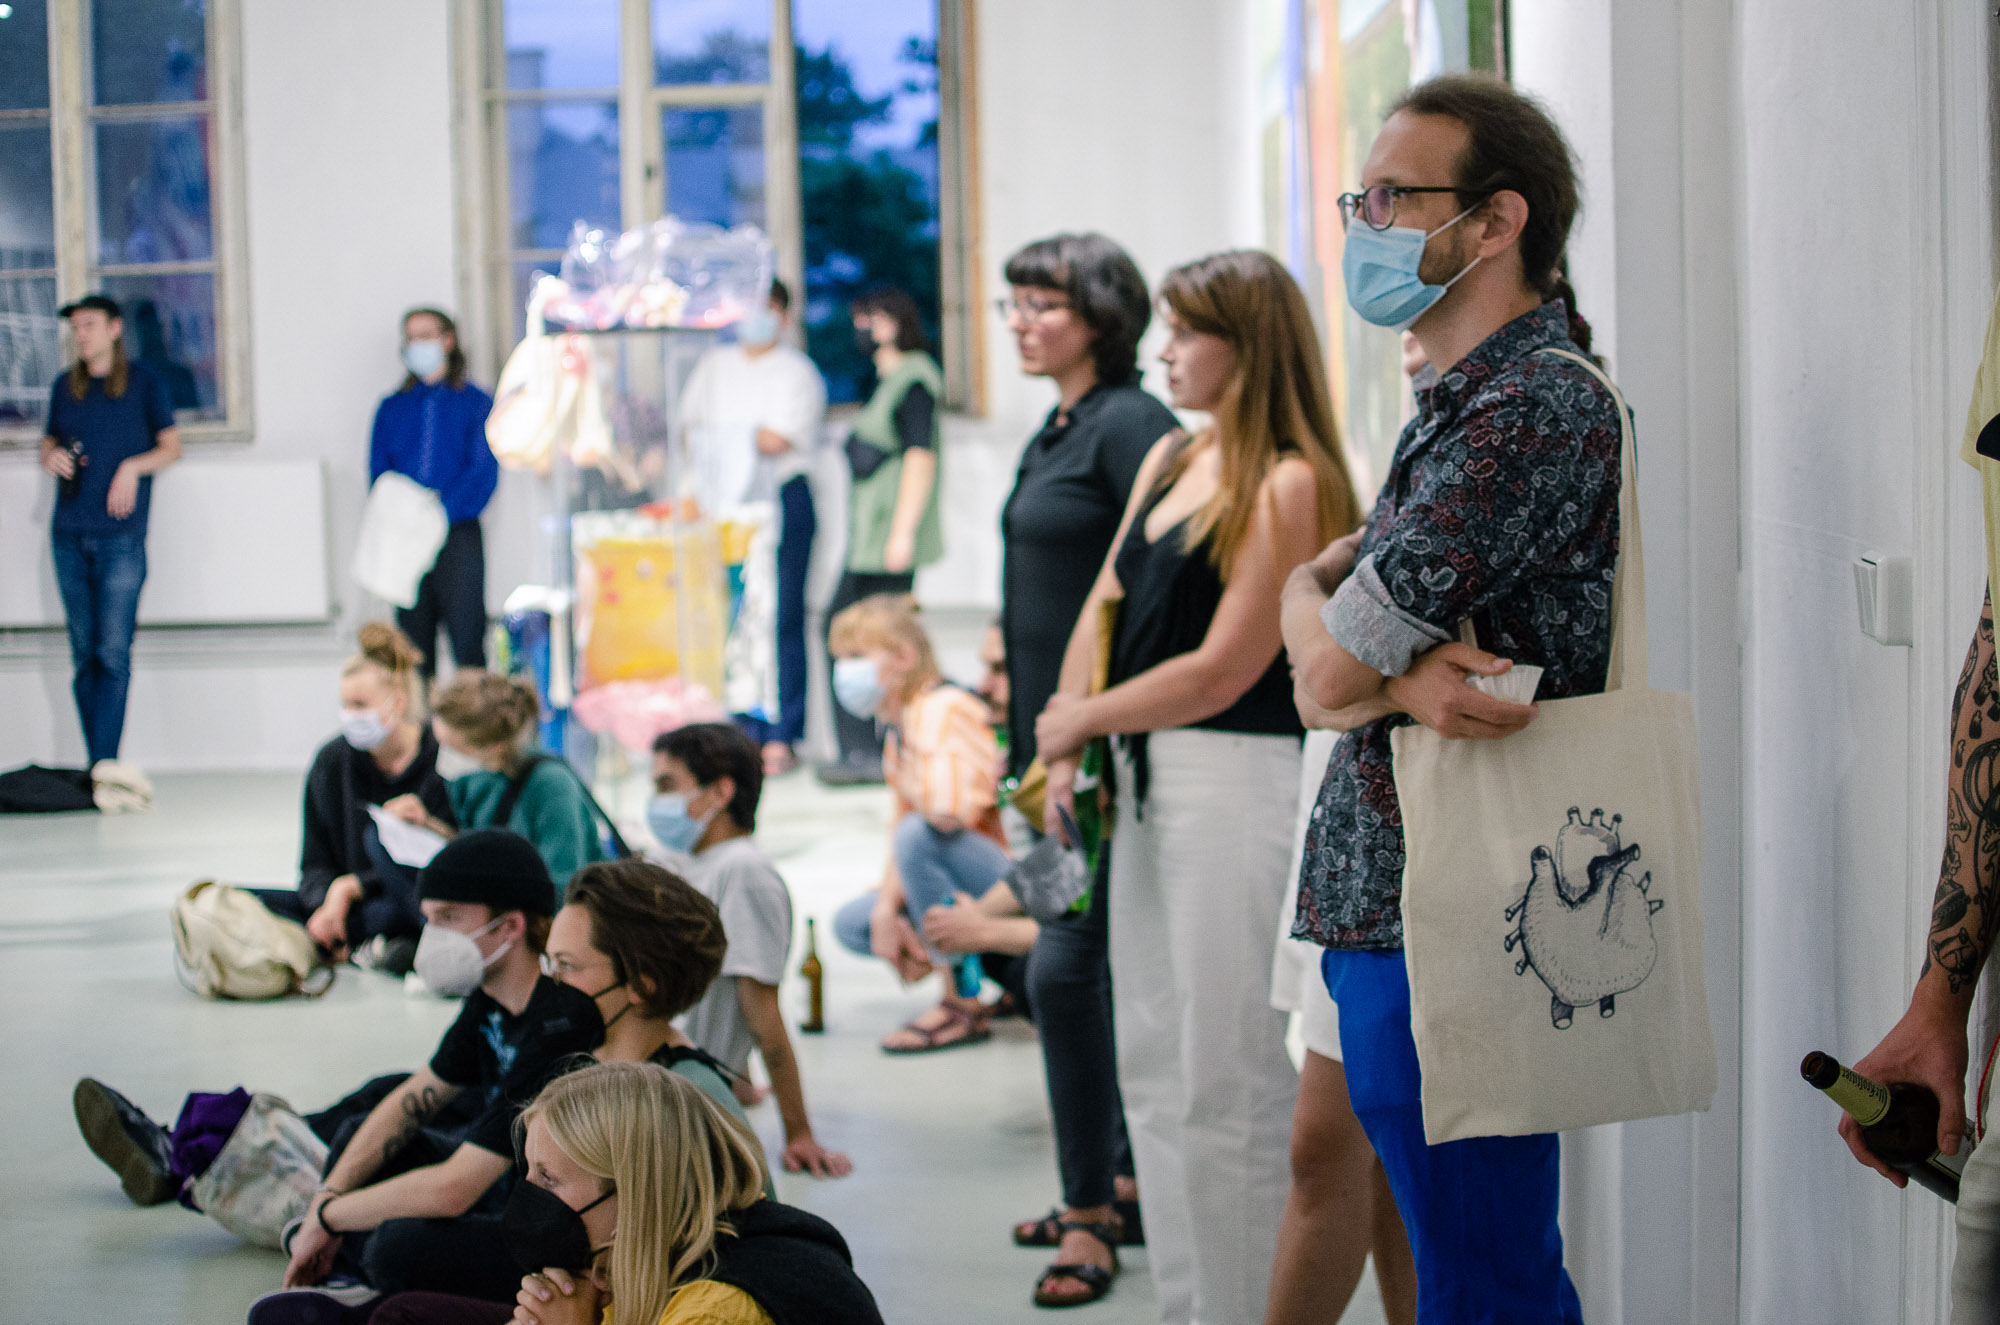 PKRD-48-Airy-Democratic-Spirituality-vernissage-PK-at-Alte-Handlesschule-20.08.21-Fanni-Papp-for-PK-12